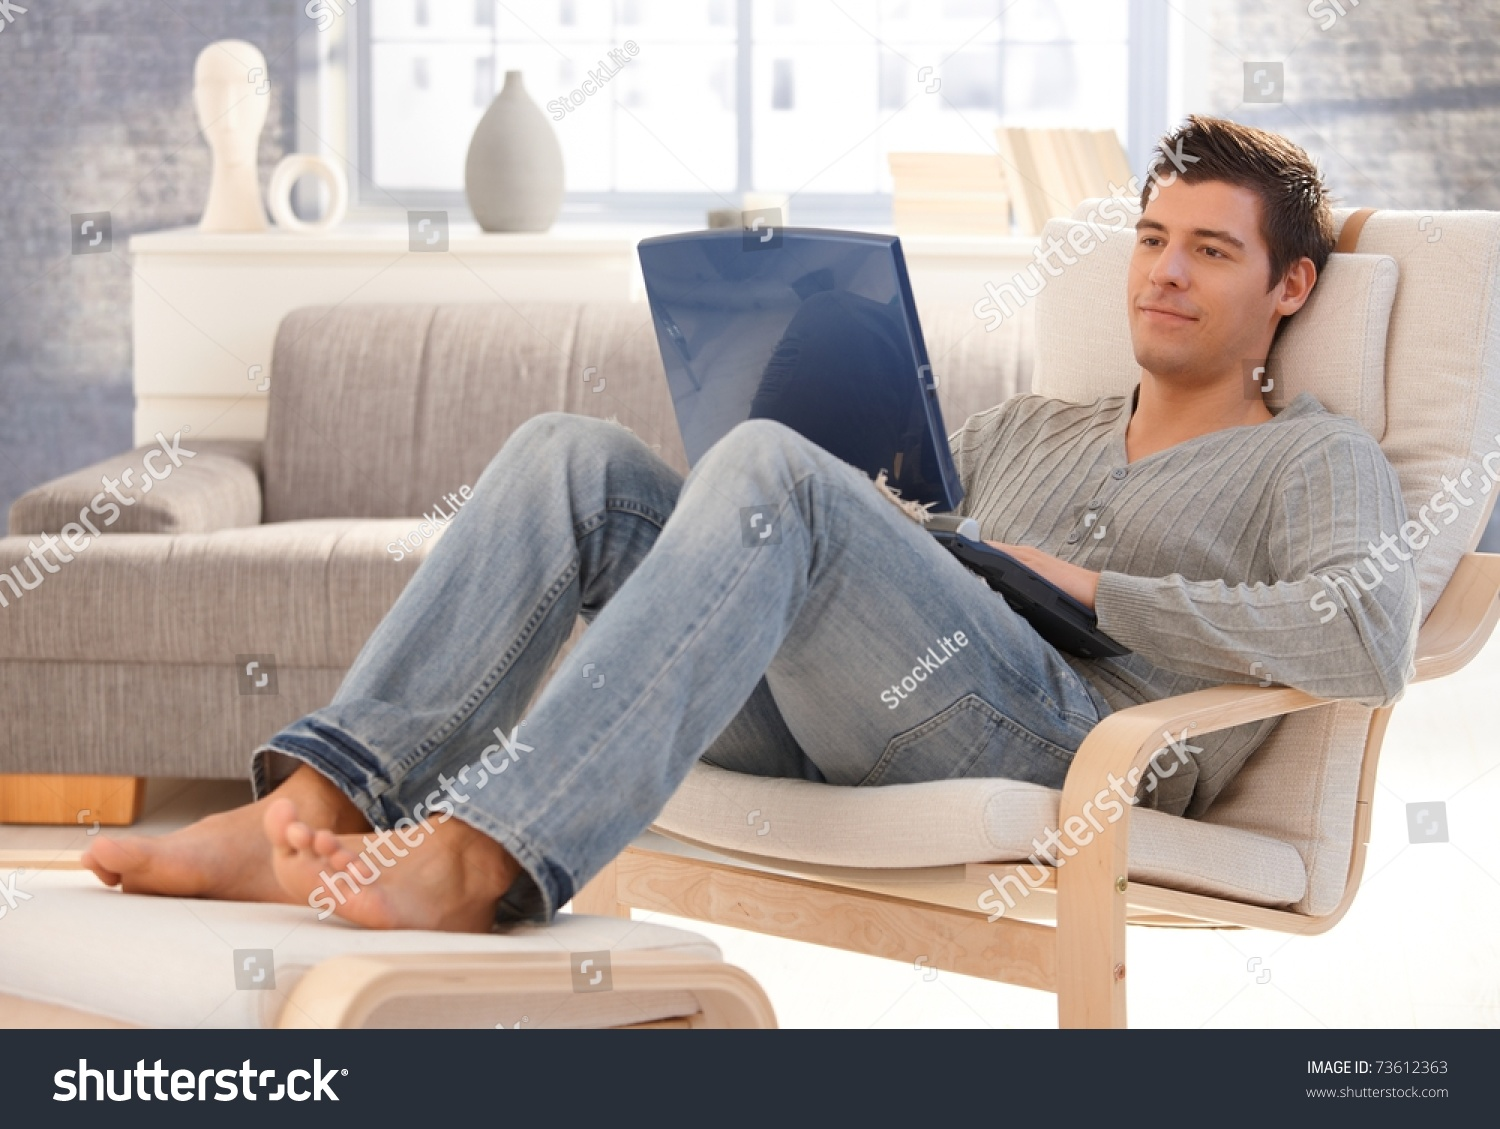 Goodlooking young man relaxing home armchair stock photo for Sitting in armchair